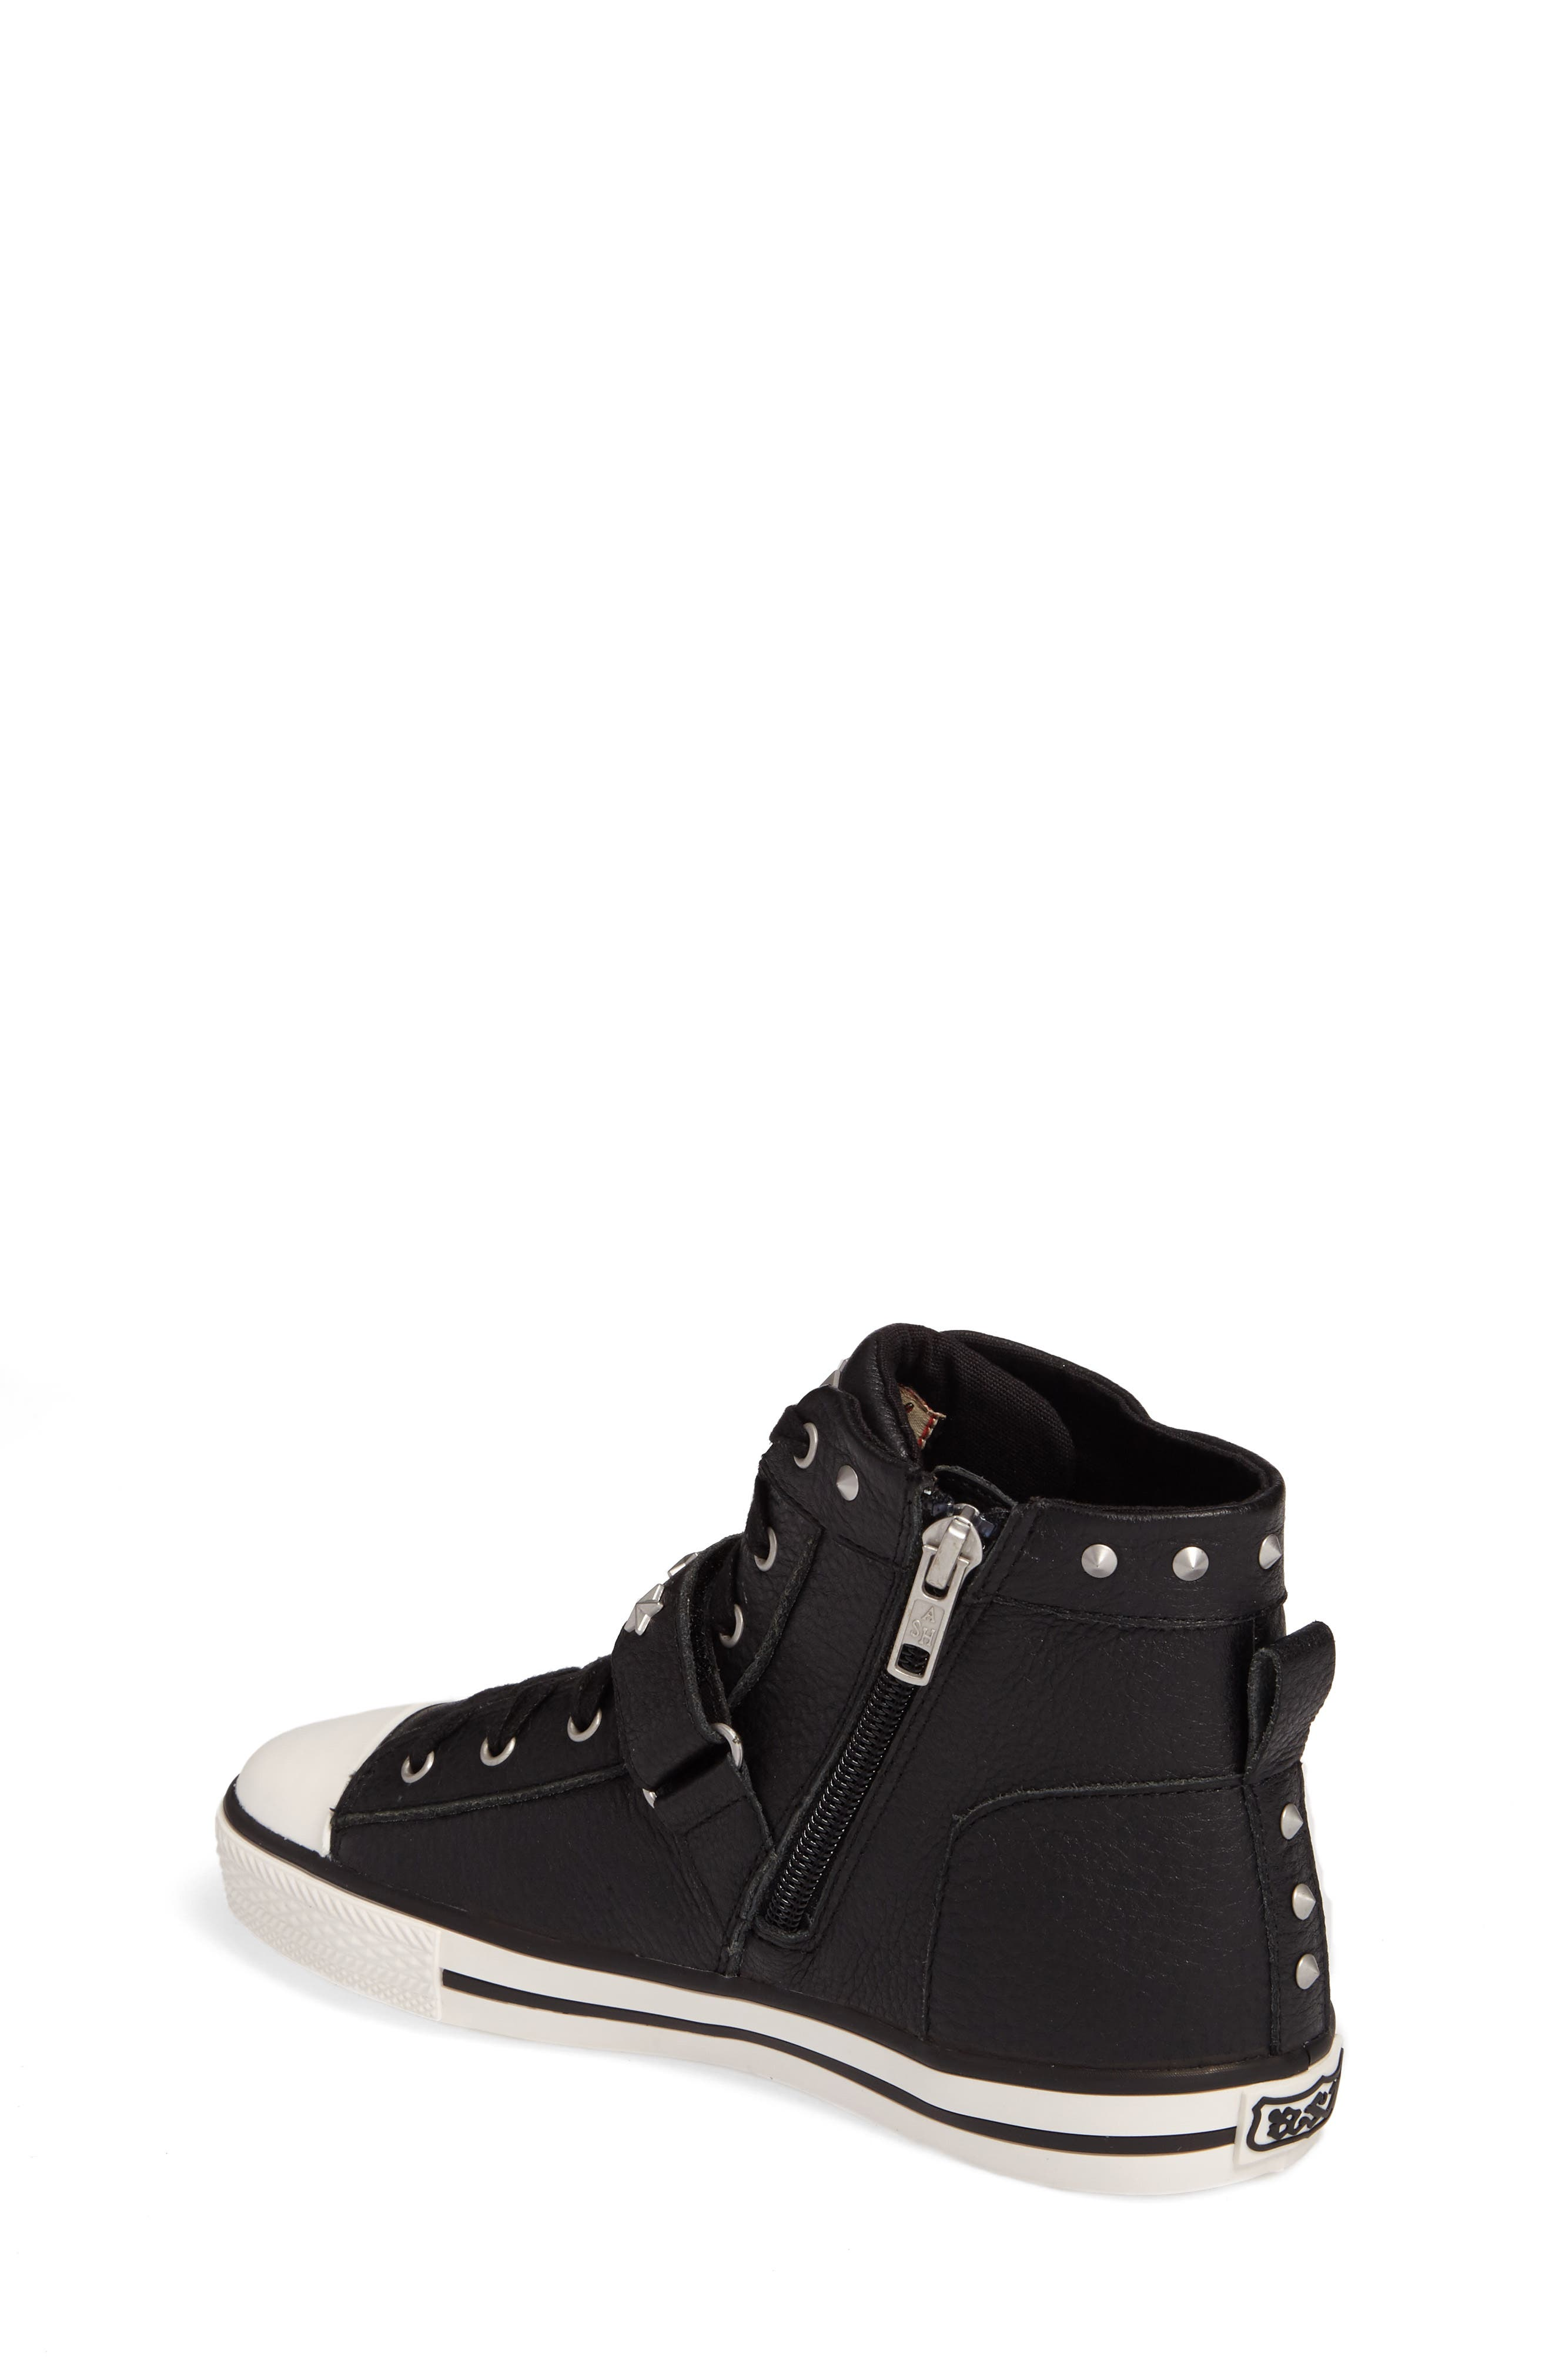 Vava Curve Studded High Top Sneaker,                             Alternate thumbnail 2, color,